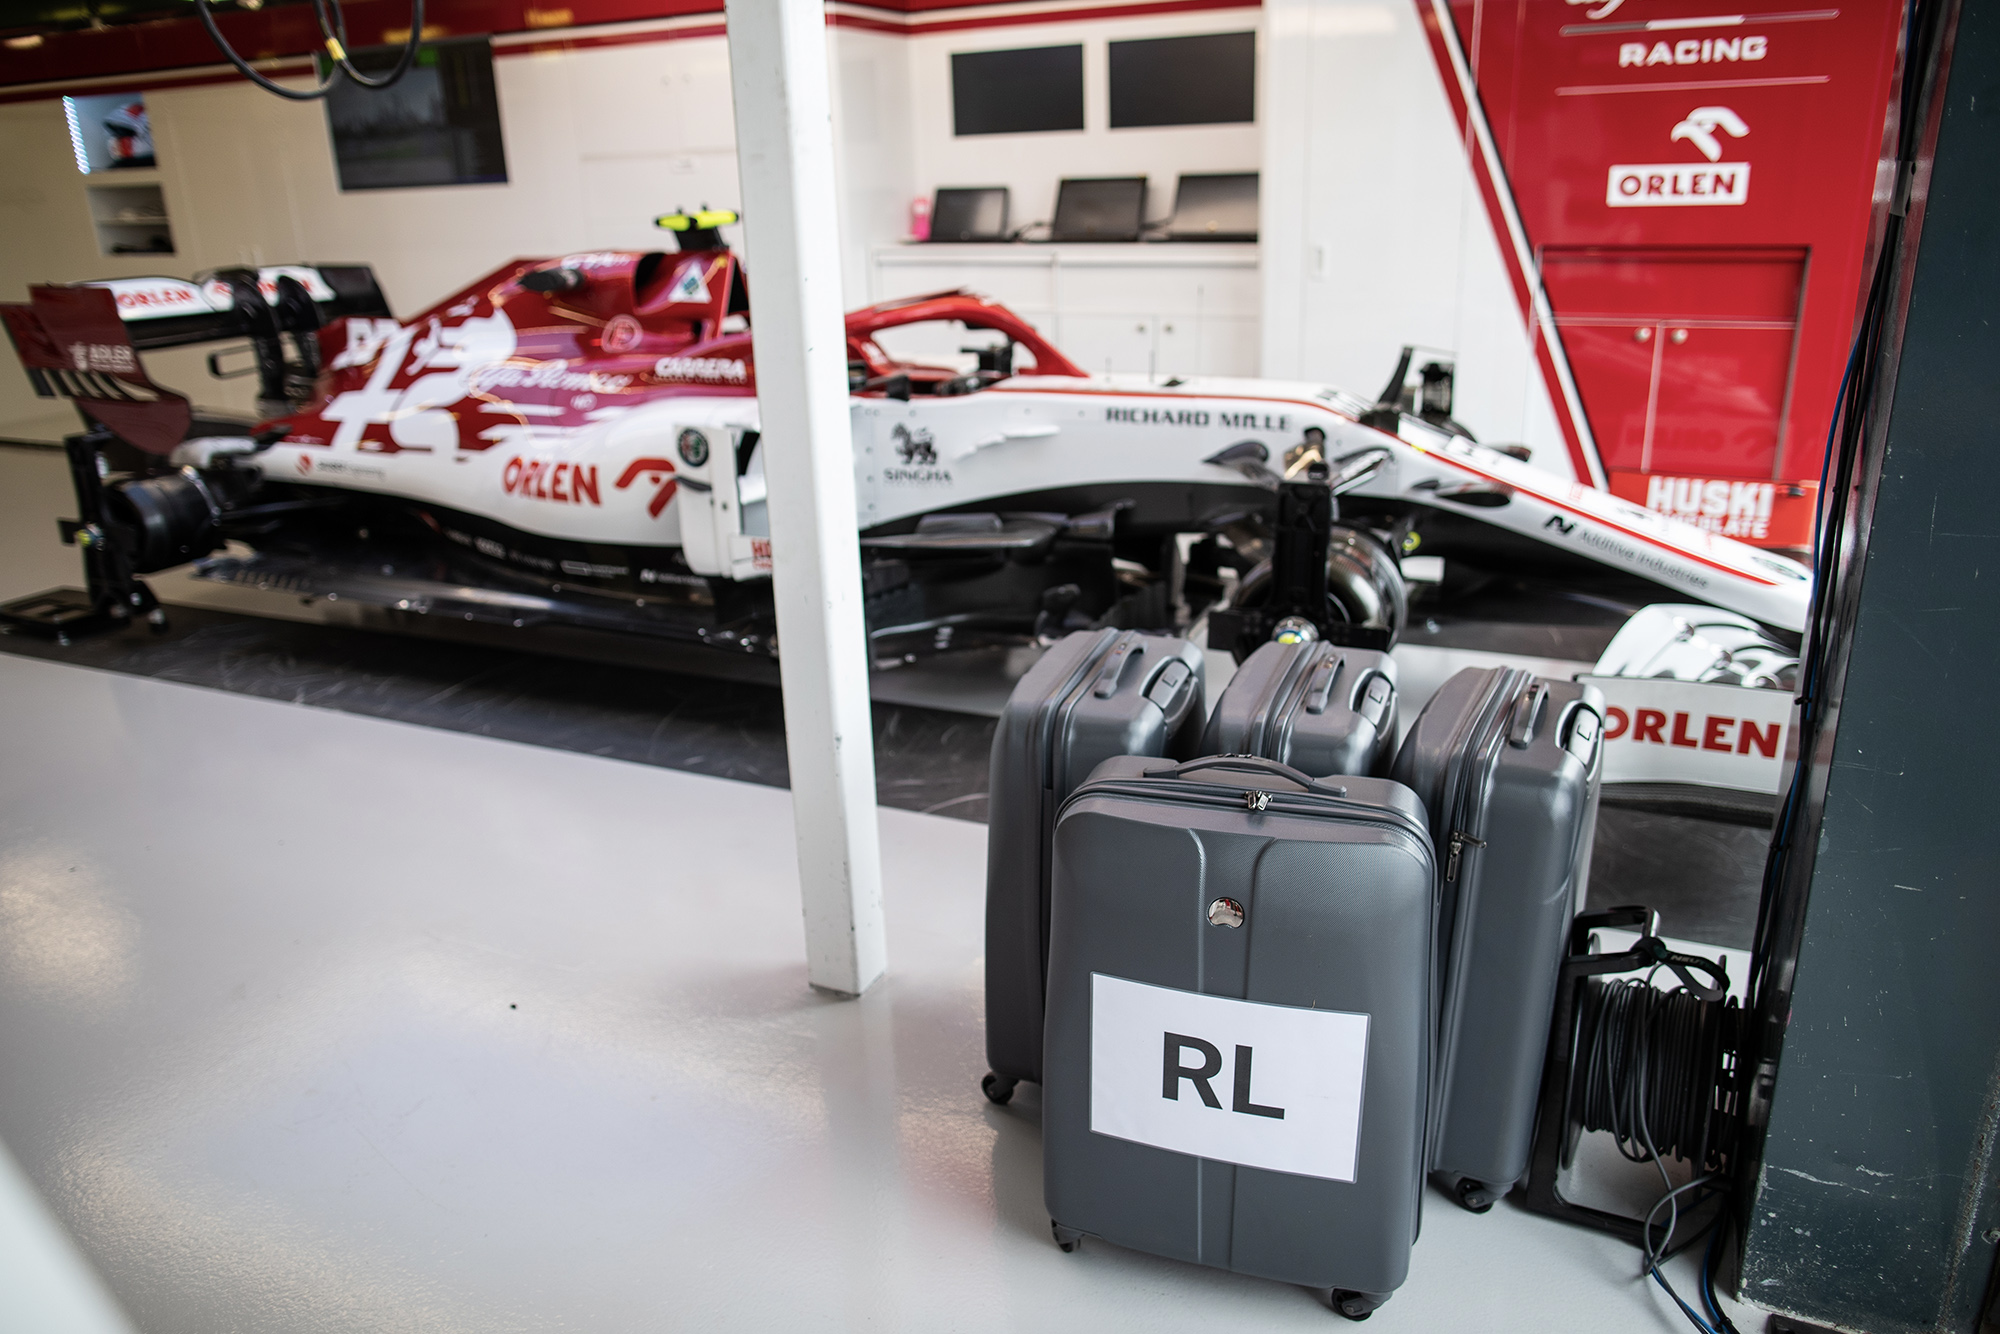 Packed bags next to Alfa Romeo in the Melbourne pits at the 2020 F1 Australian Grand Prix